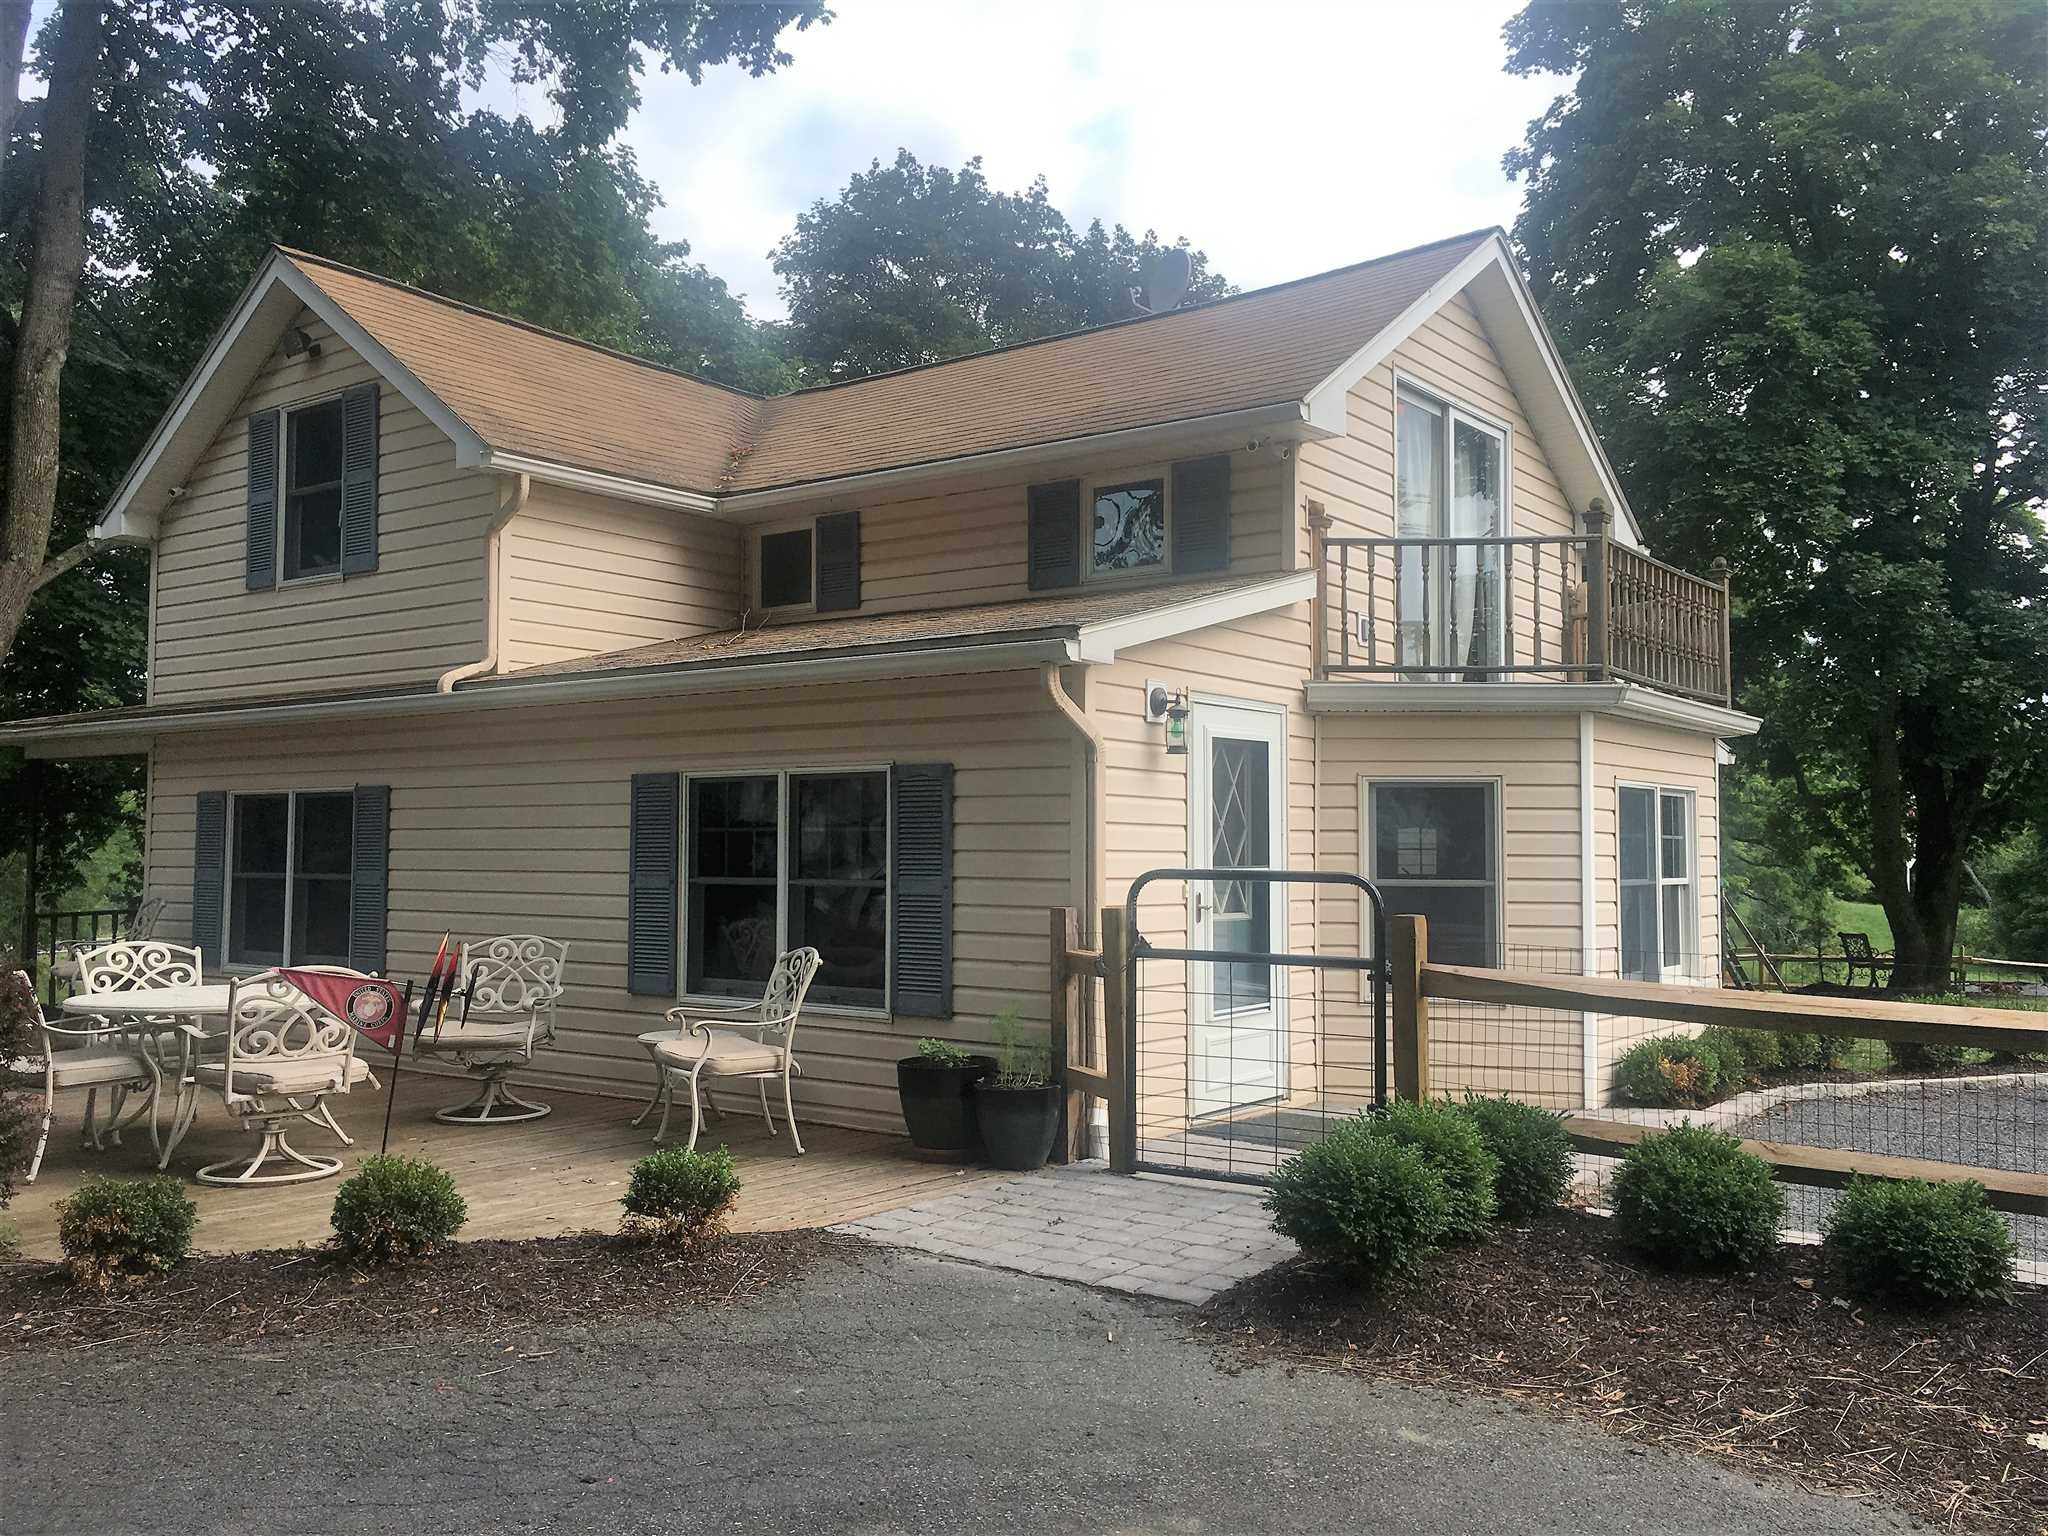 Single Family Home for Sale at 178 CHURCH Avenue 178 CHURCH Avenue Germantown, New York 12526 United States